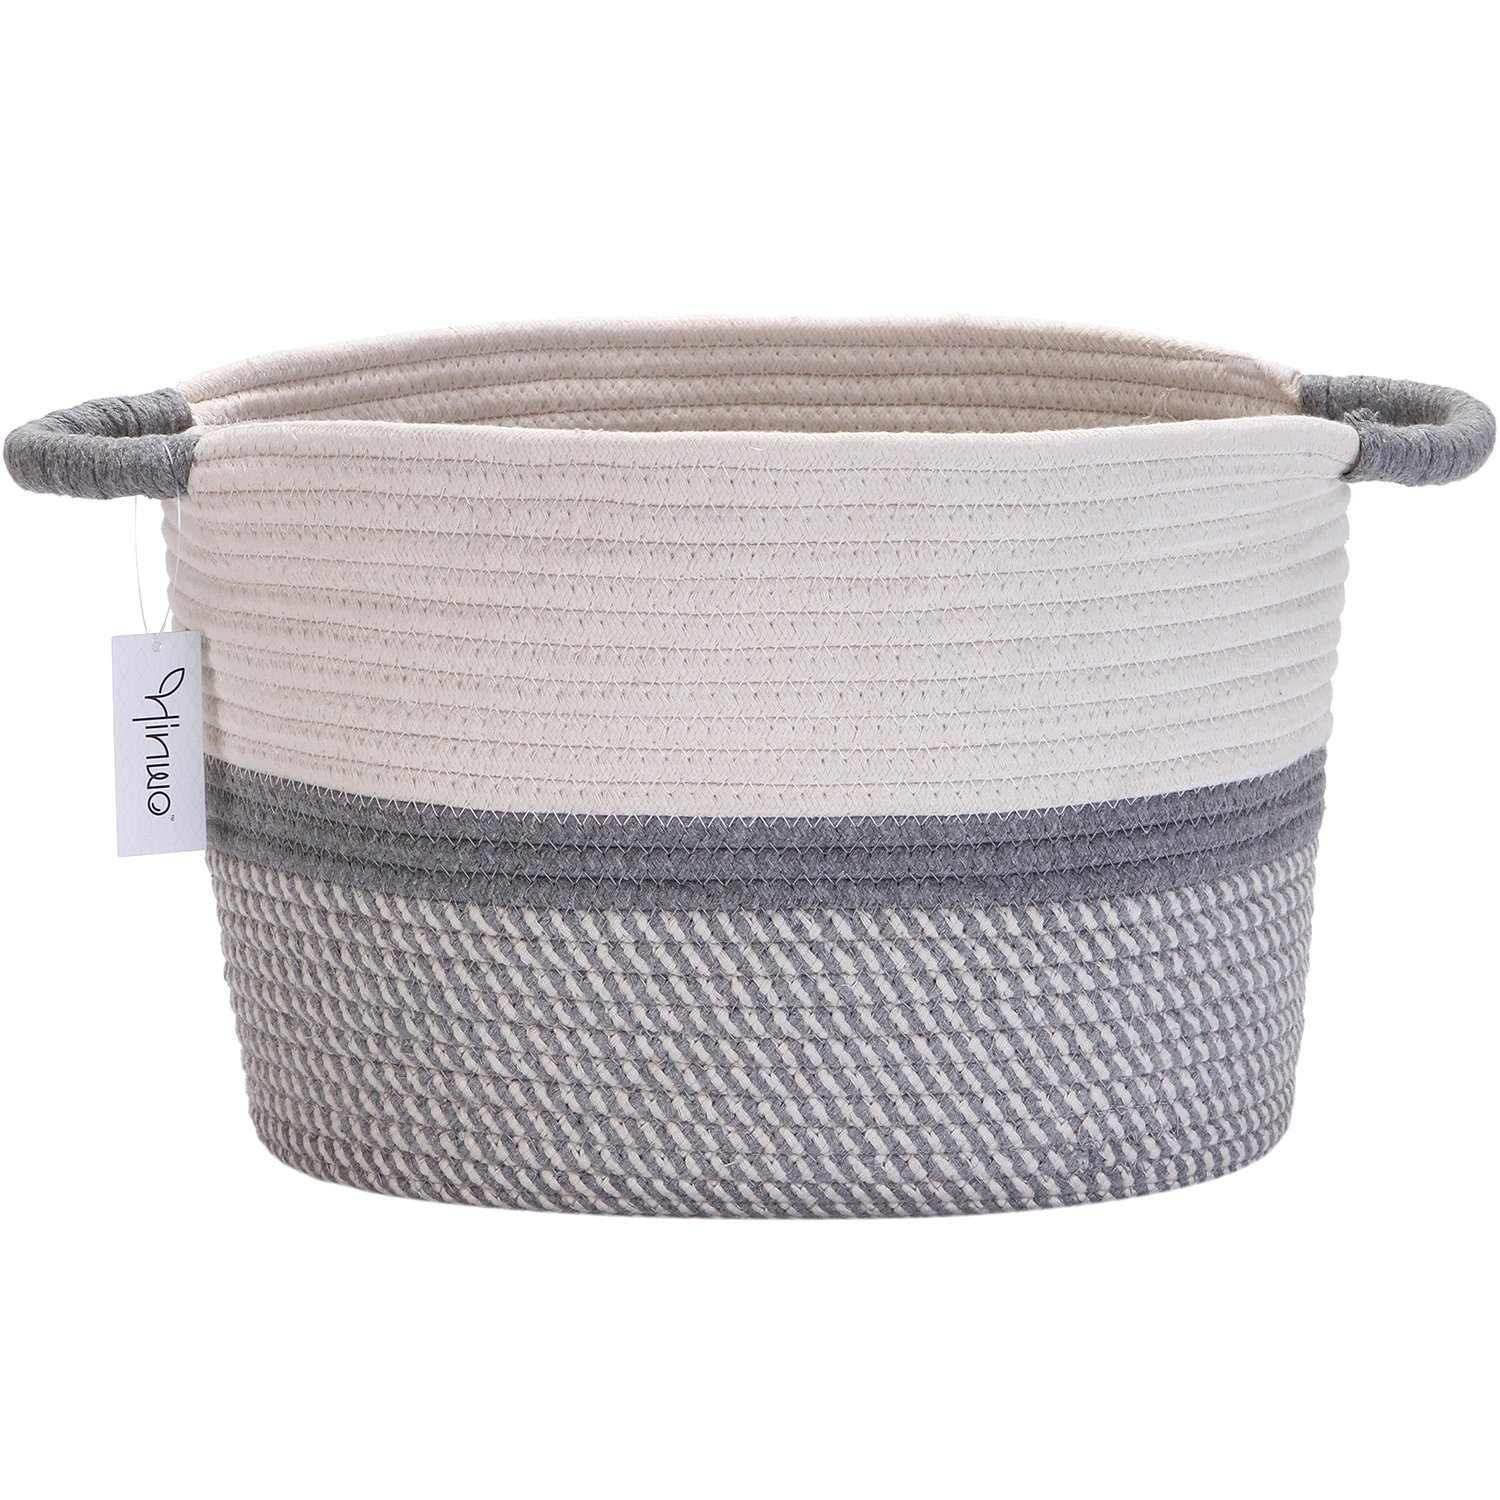 Hinwo Oval Cotton Rope Storage Basket Collapsible Nursery Storage Box Container Organizer with Handles, 13 x 10 inches, Off White and Grey